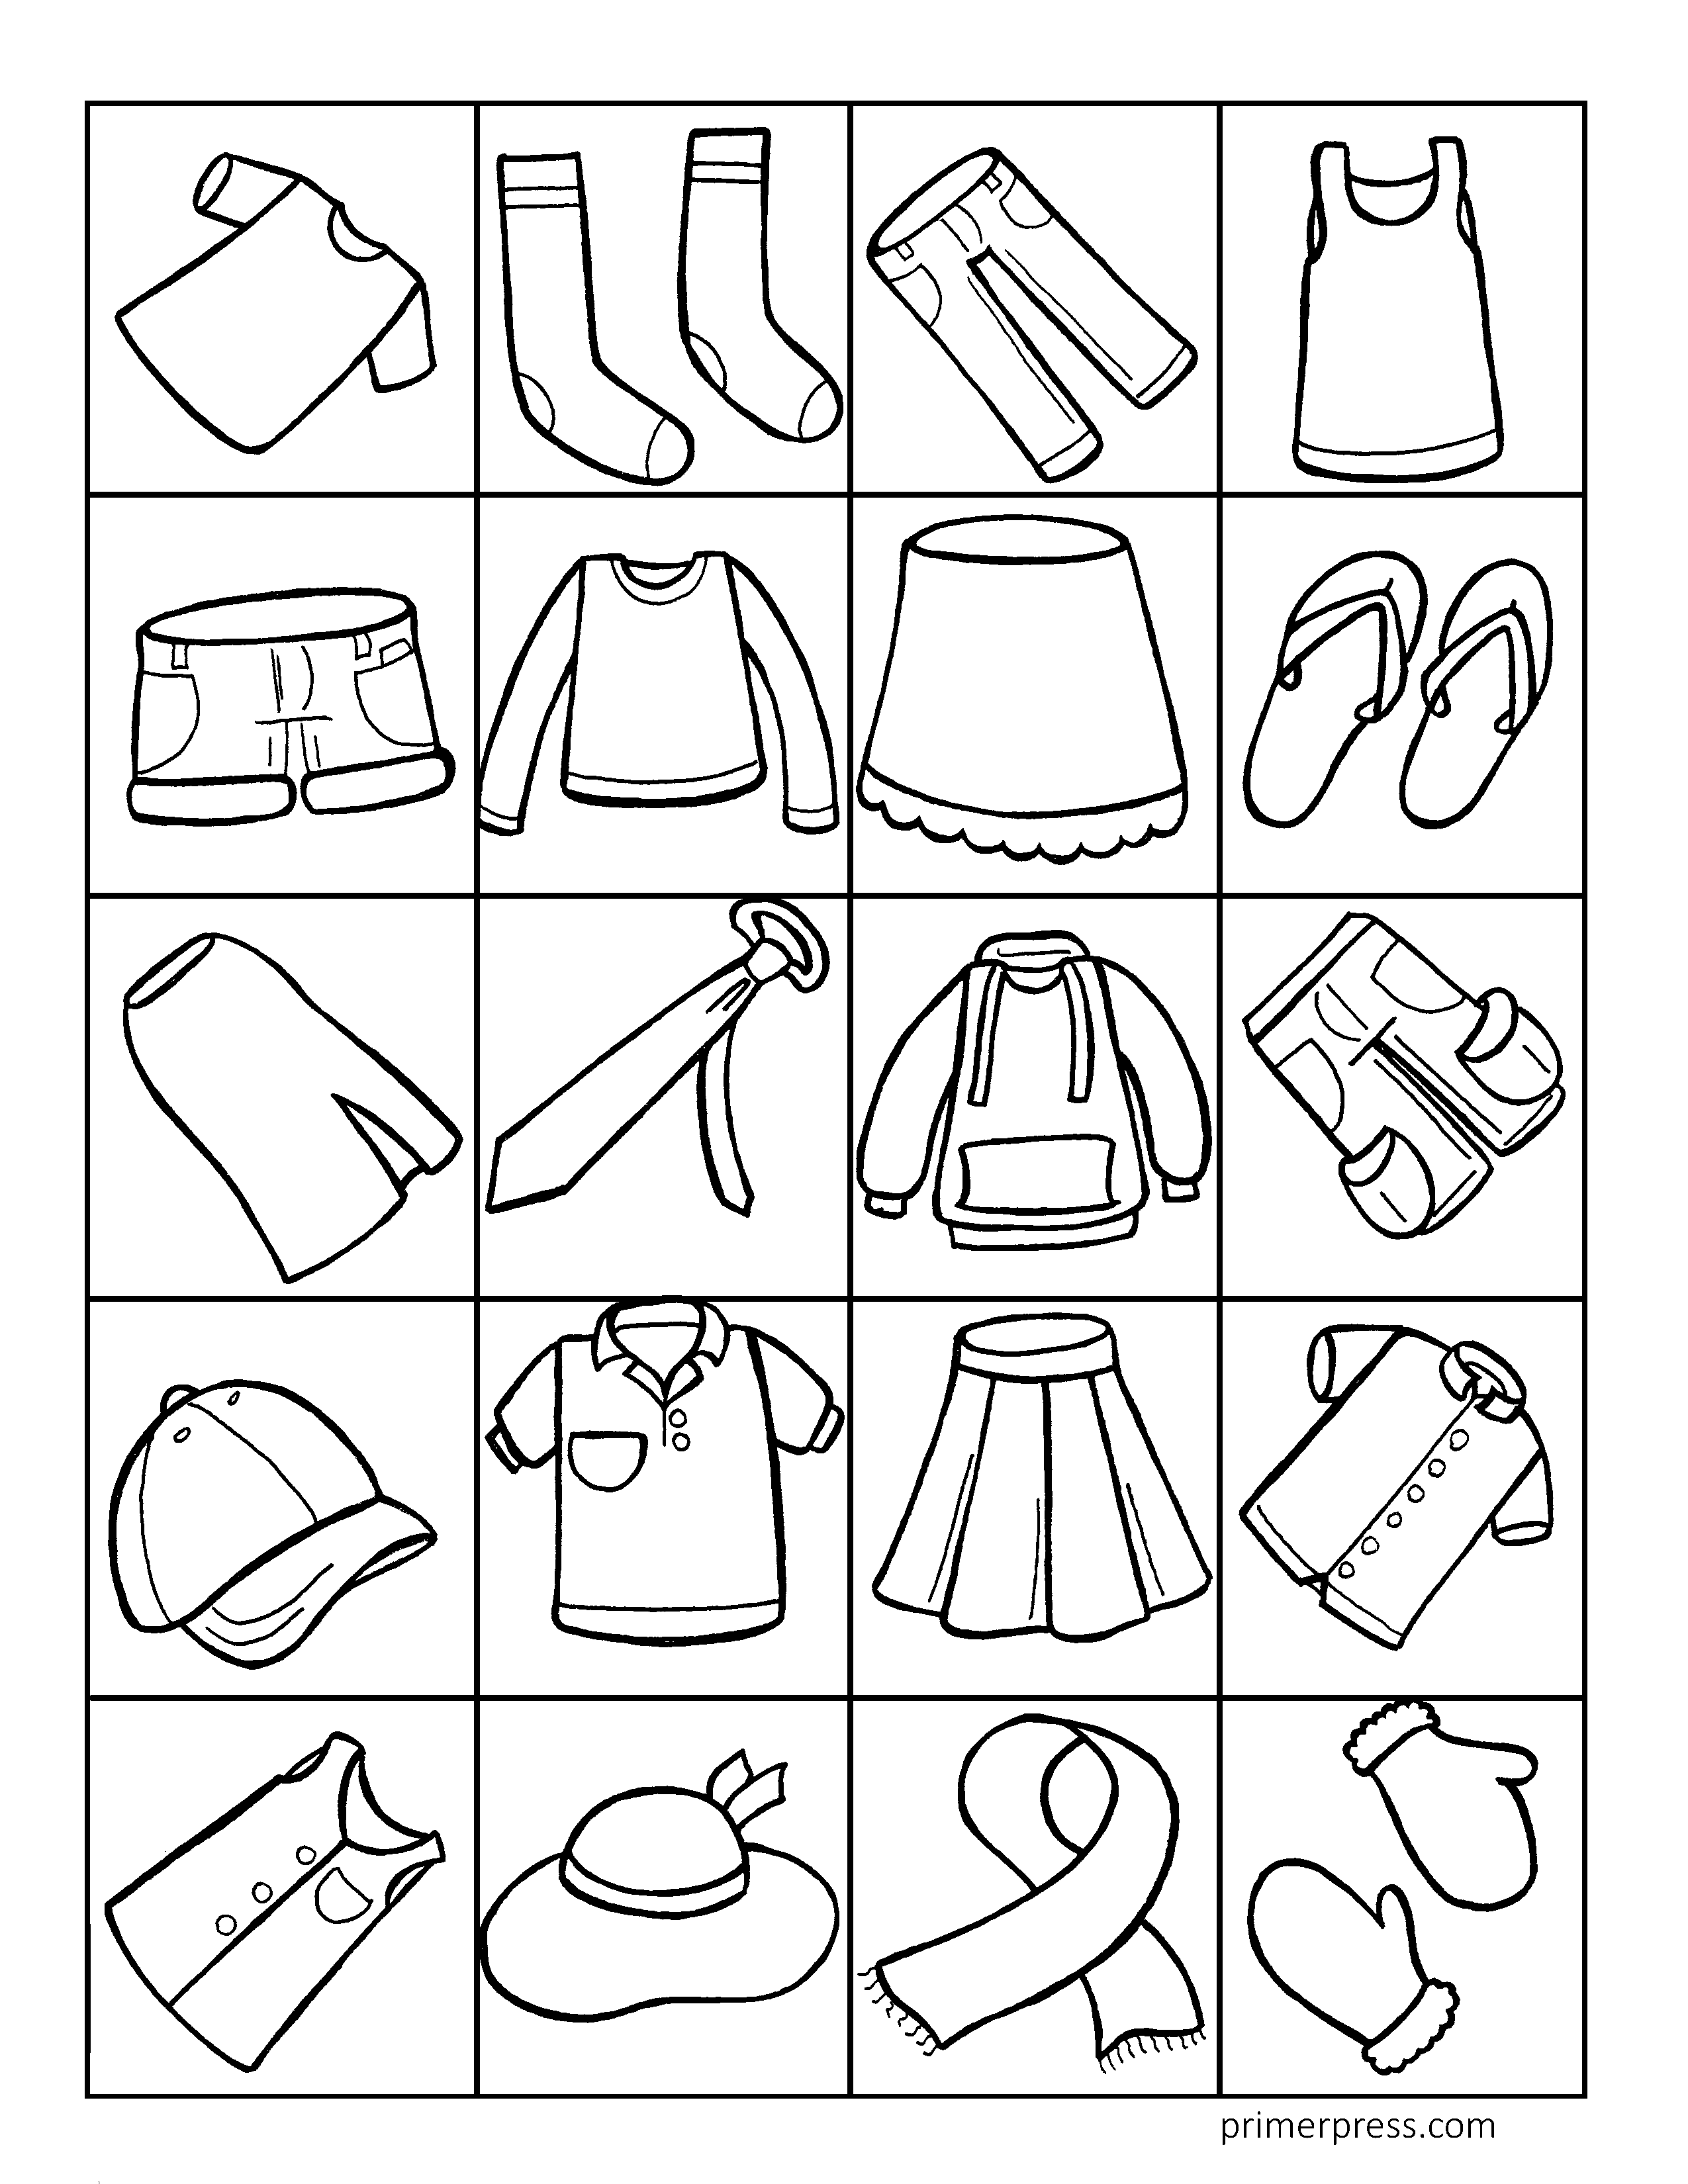 Clothing Coloring Pages 1